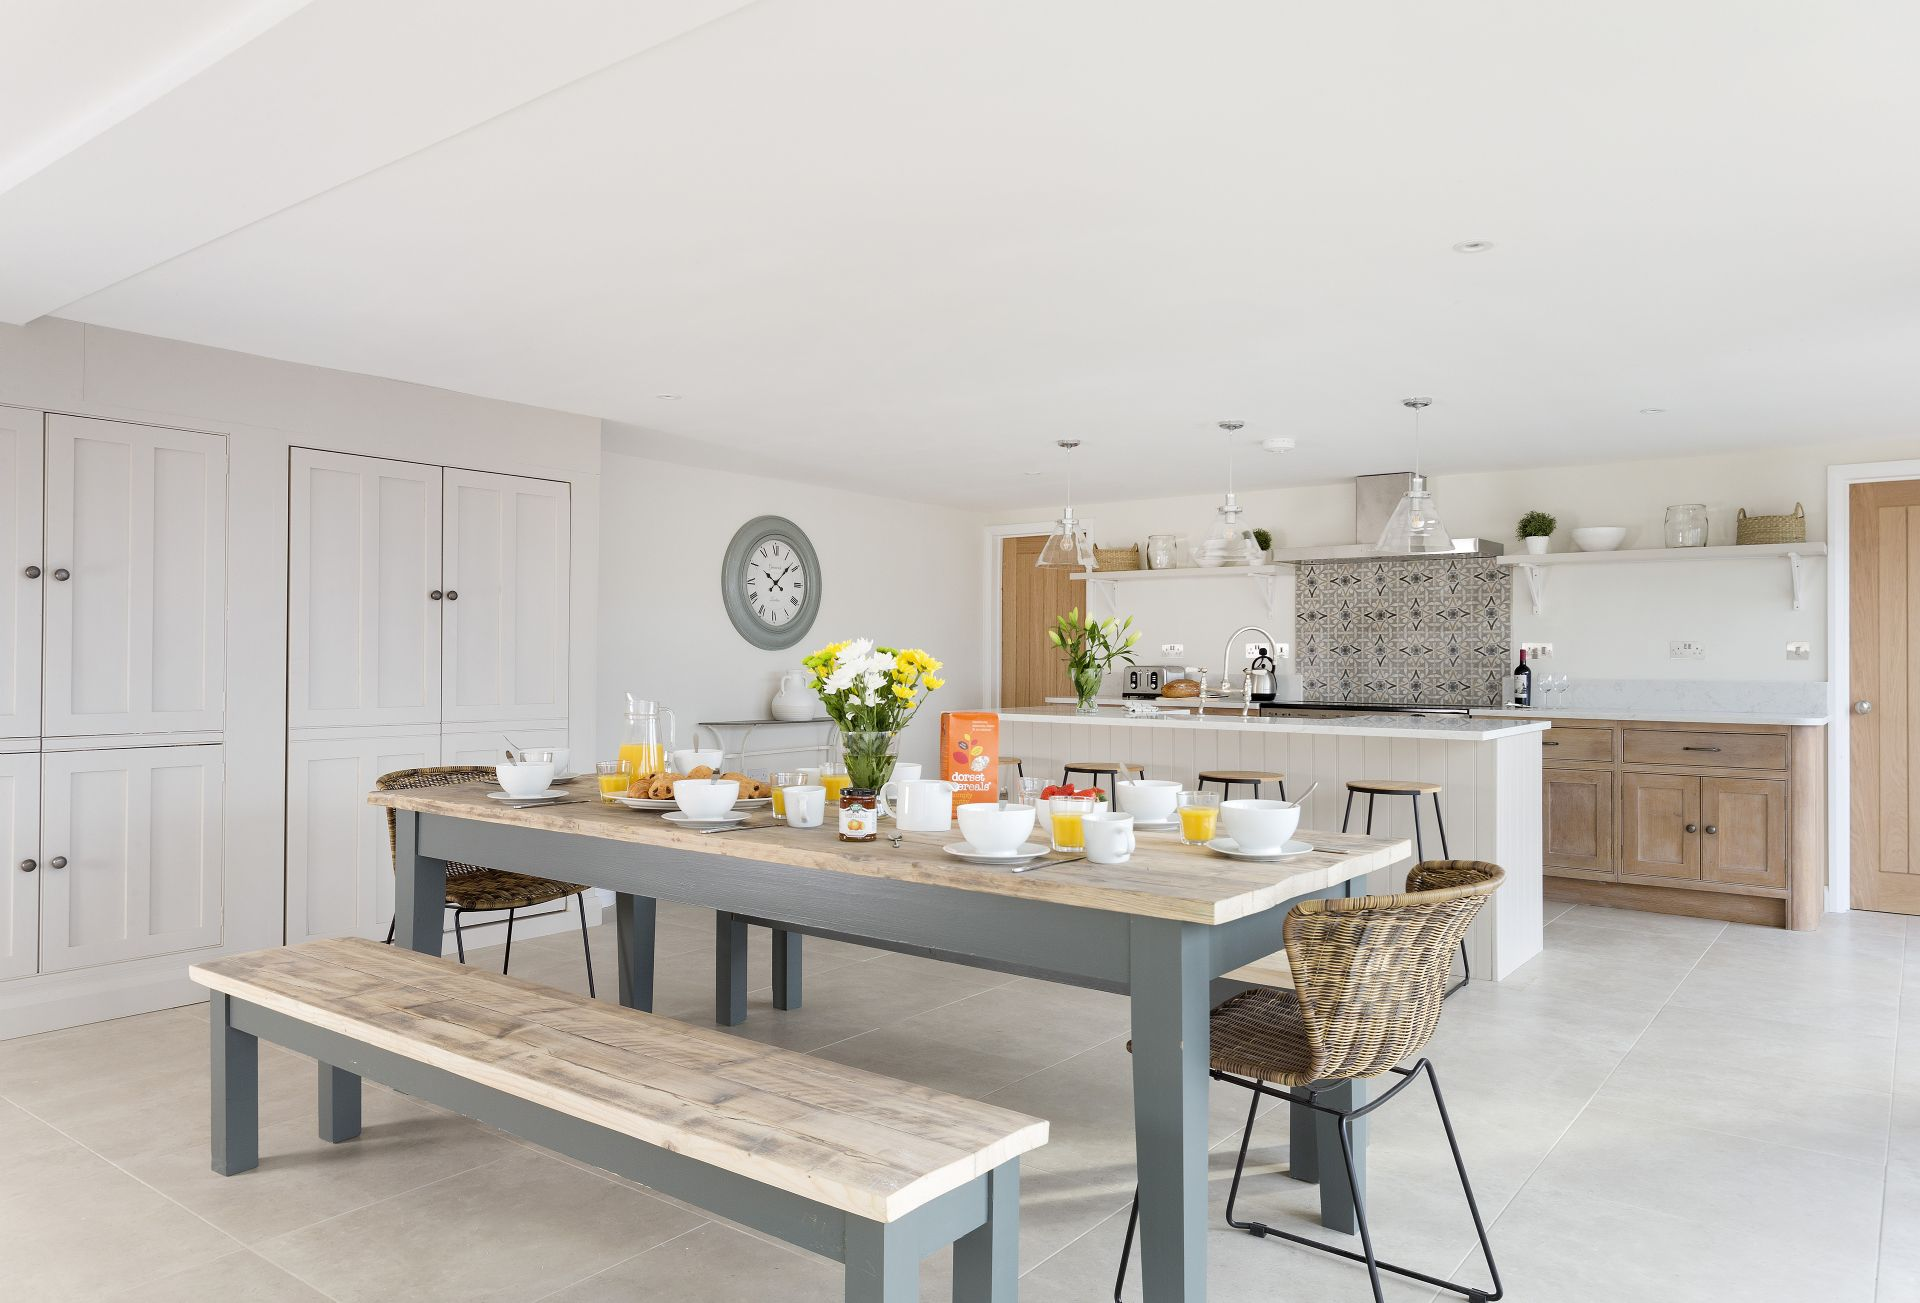 Ground floor:  A sociable open-plan kitchen and dining space